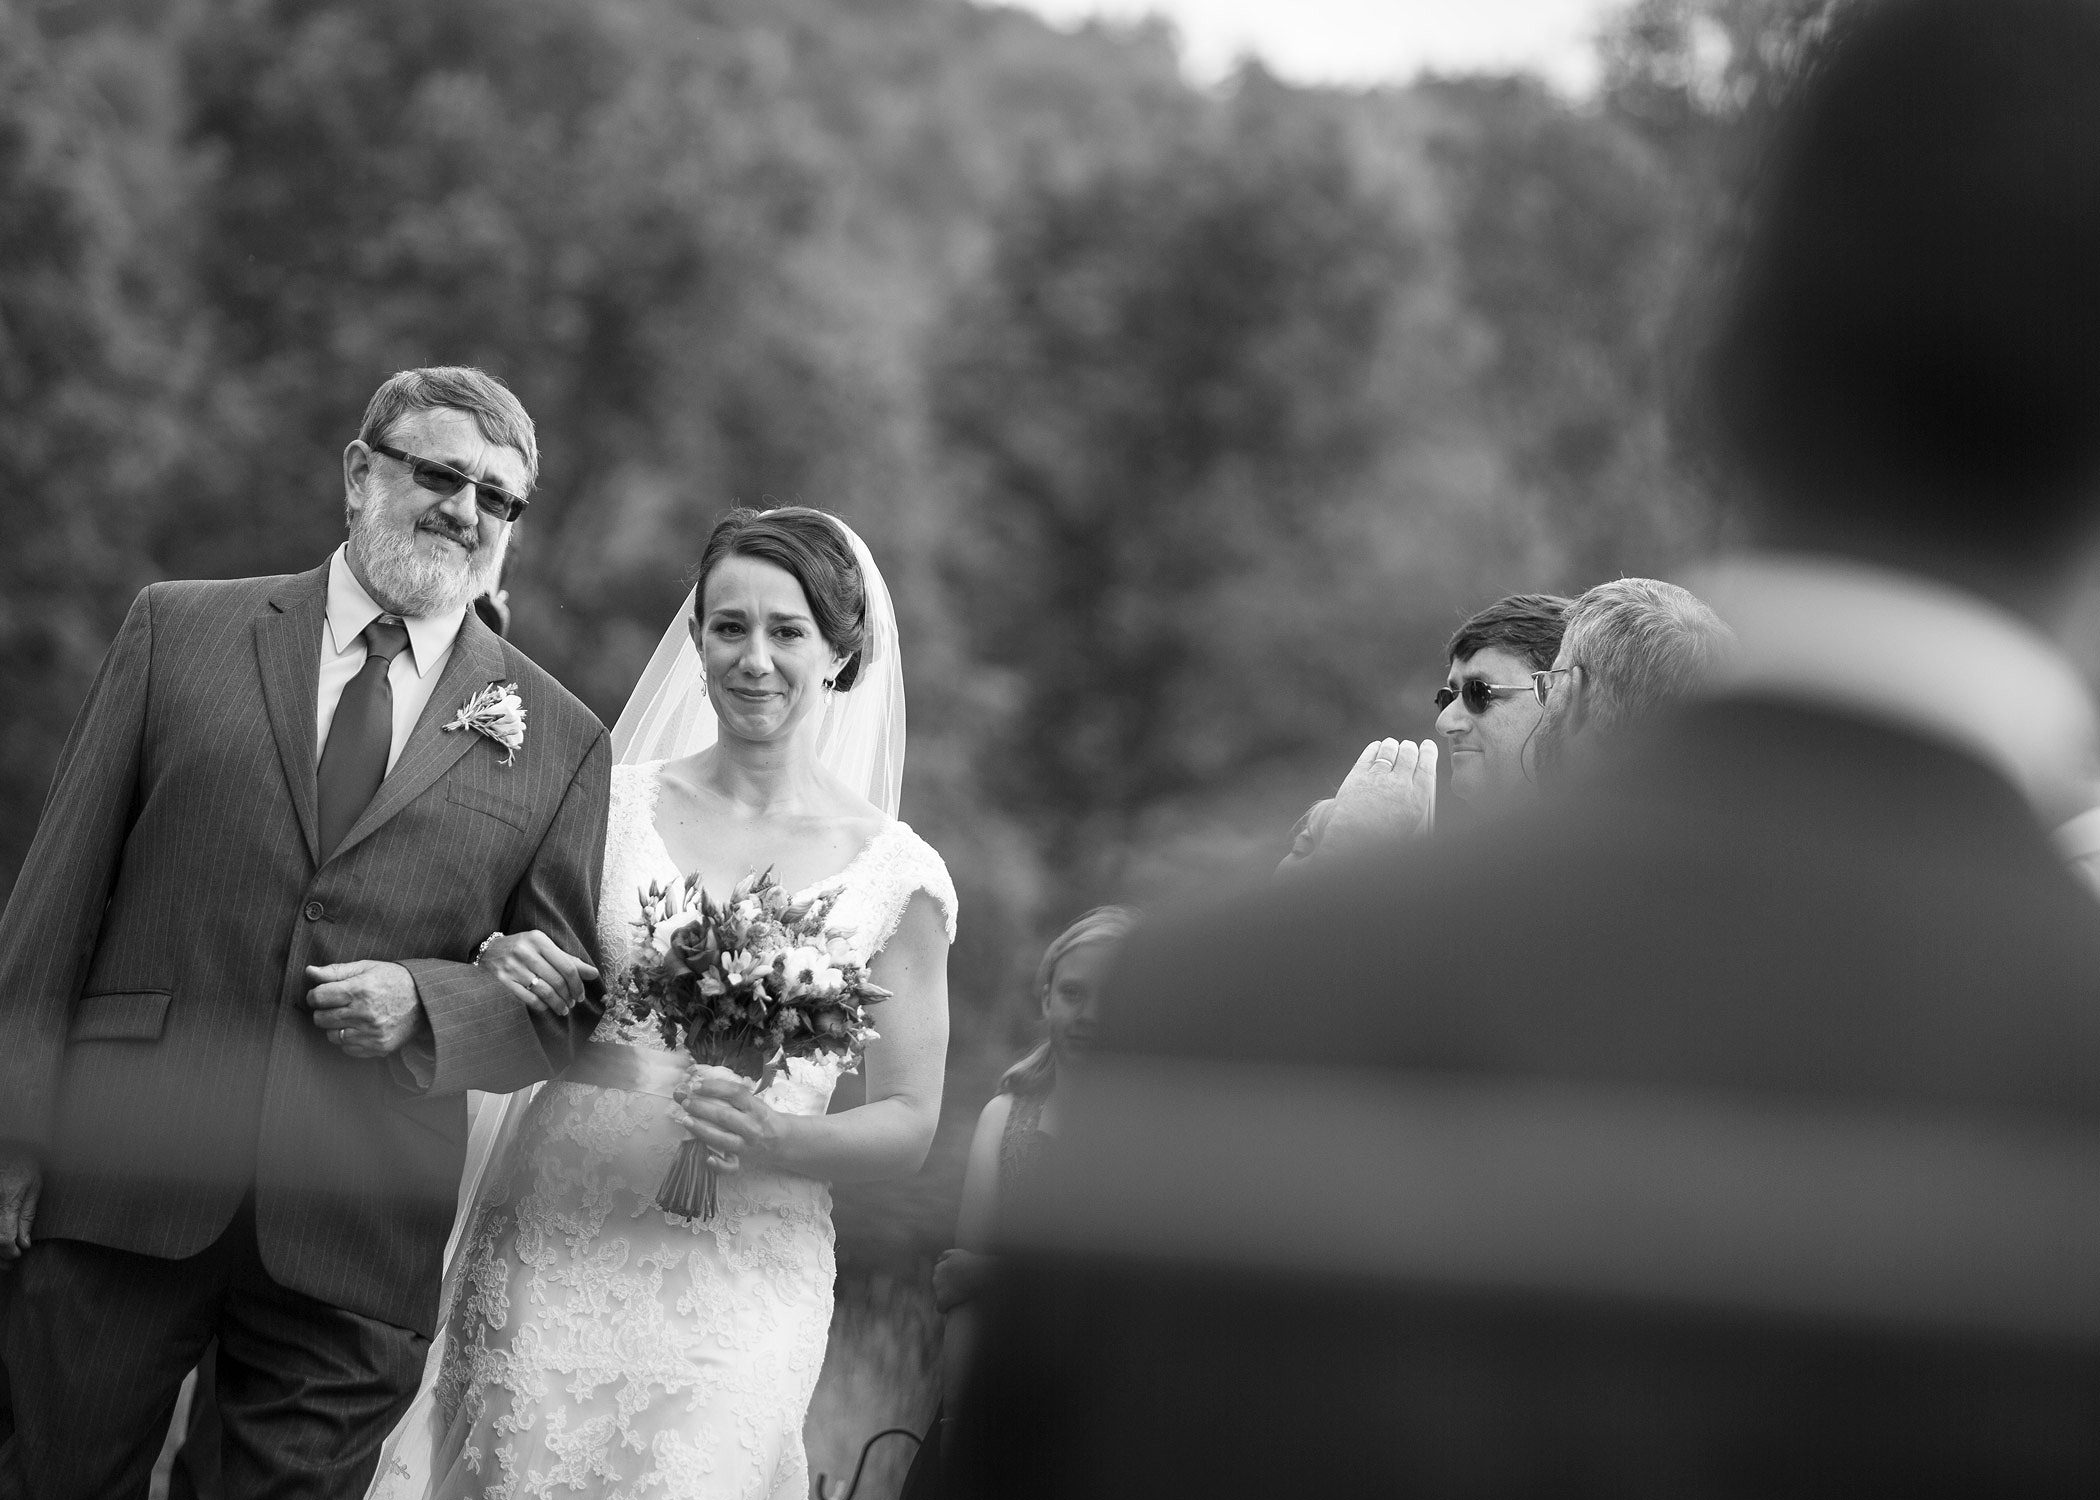 A bride is seen walking down the aisle with her father over the shoulder of the groom during a wedding at Bliss Ridge by Vermont wedding photographer Stina Booth